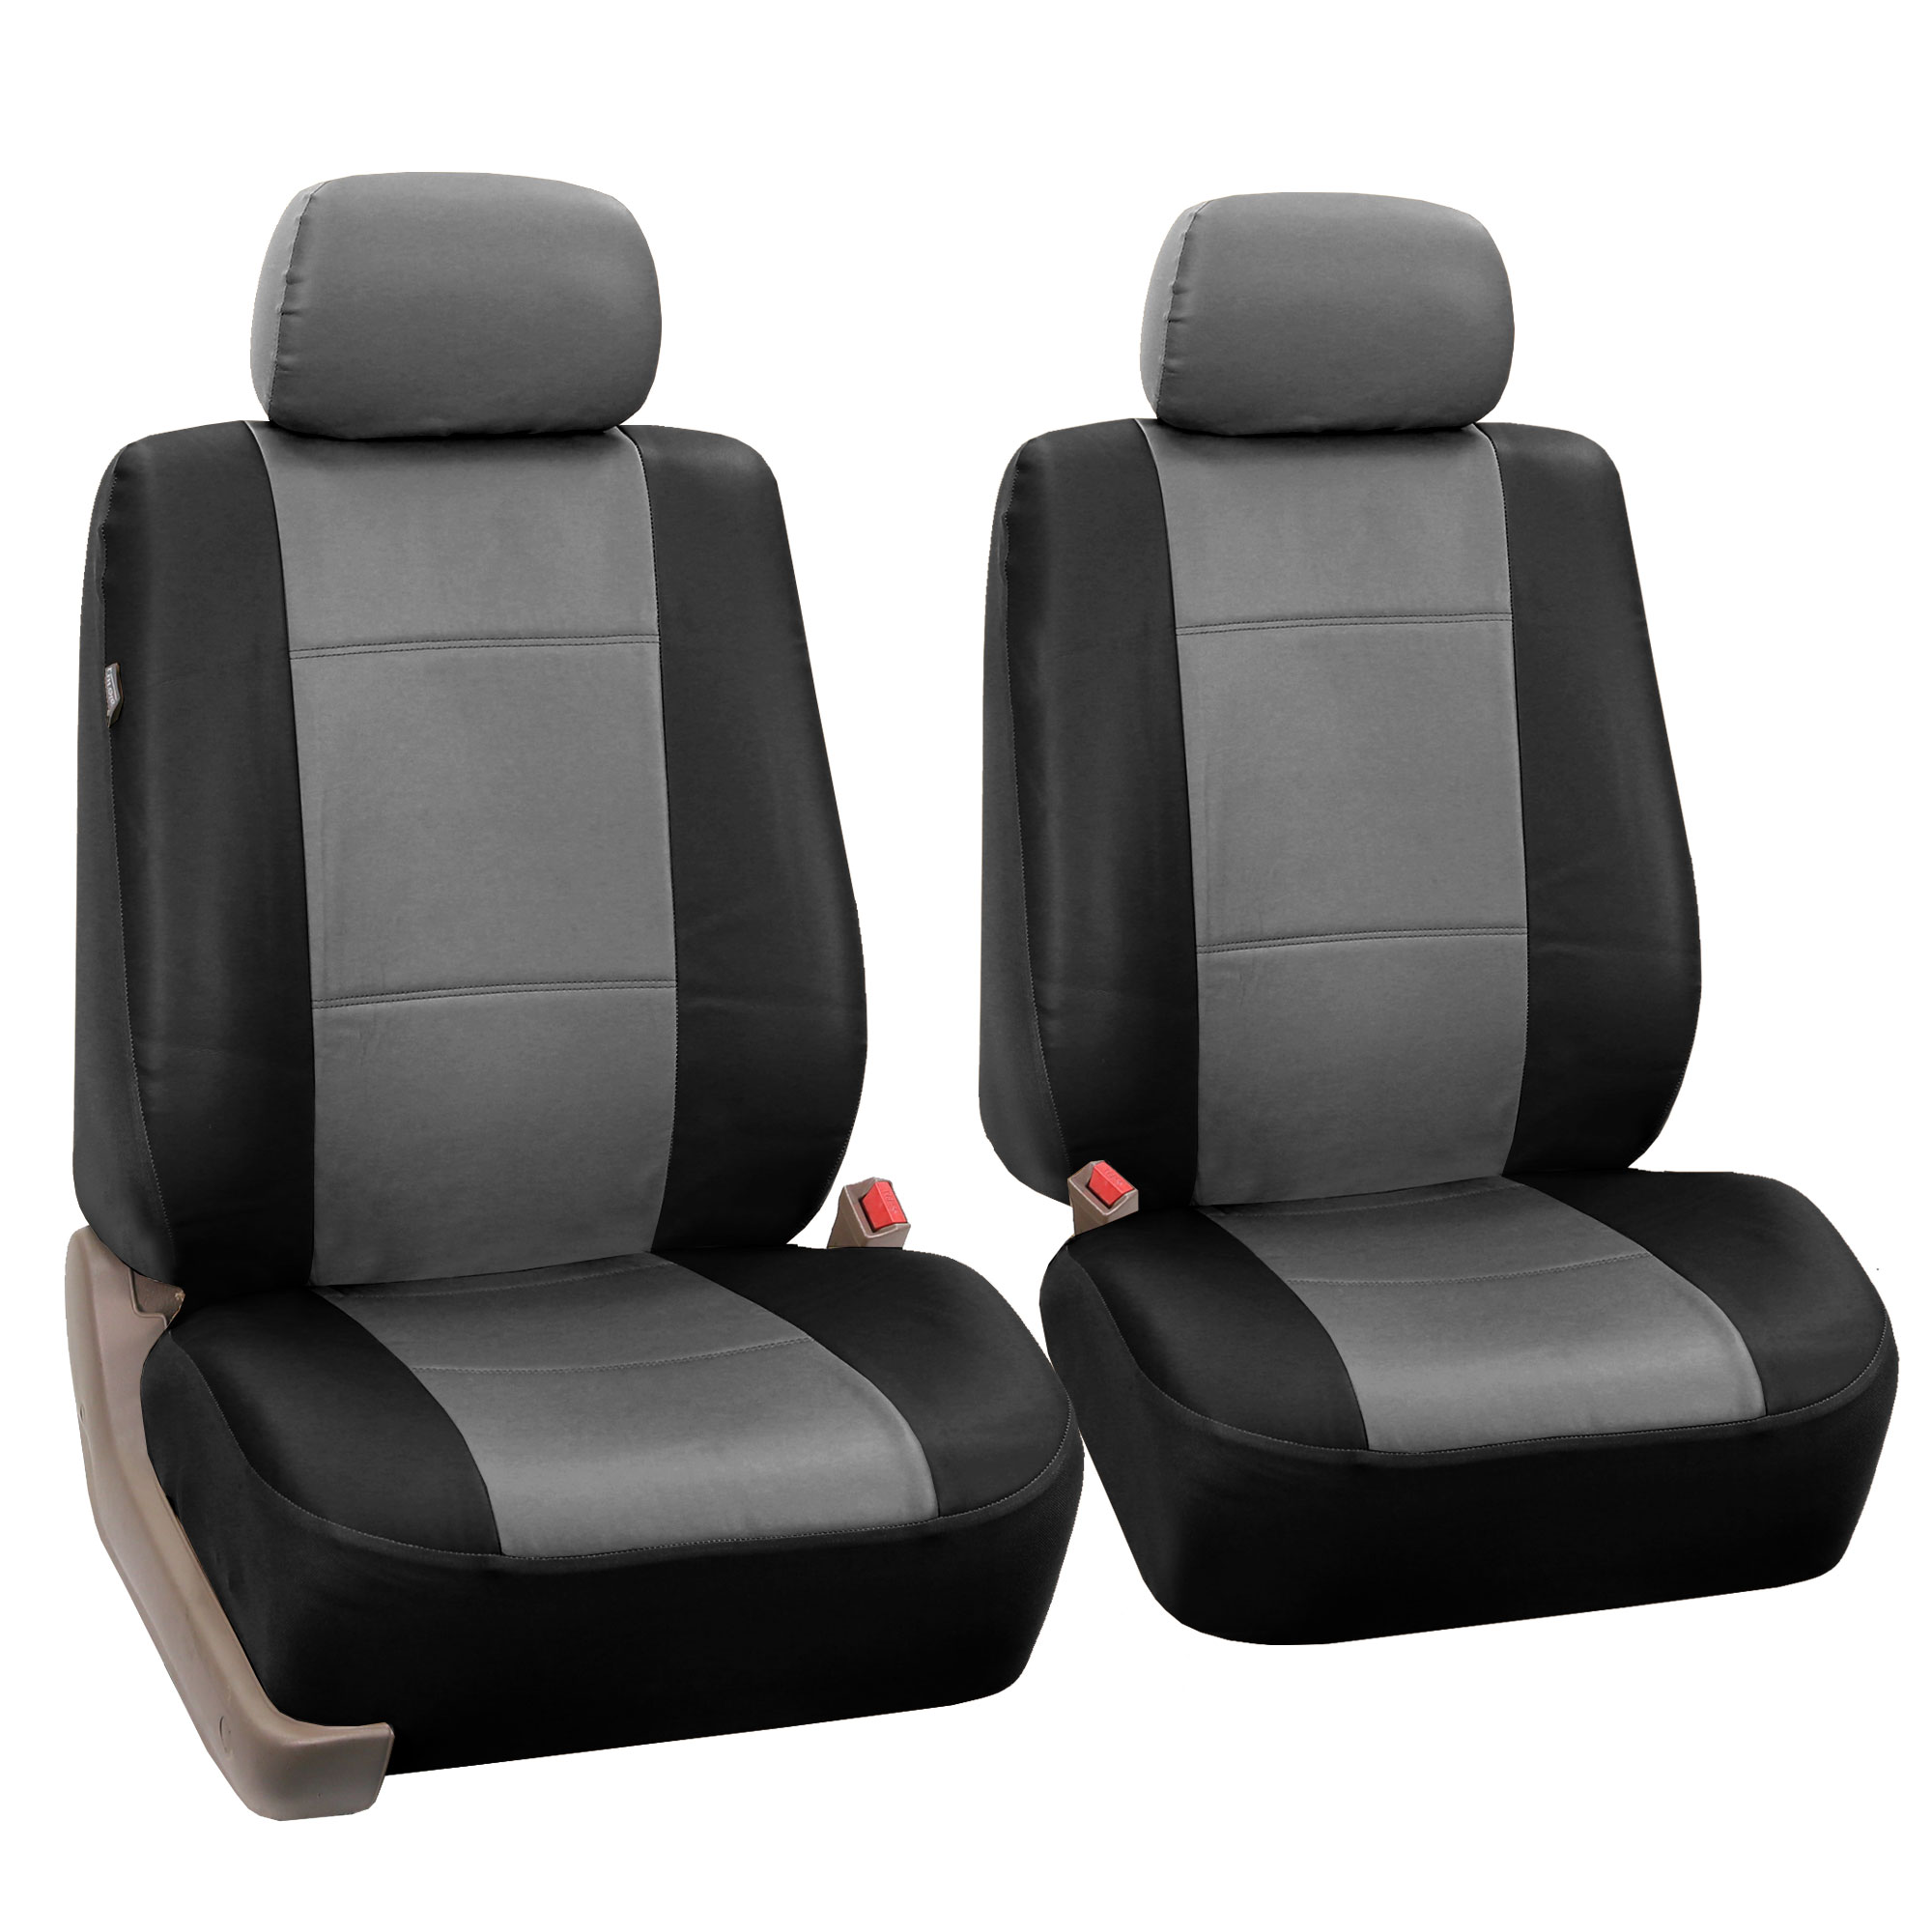 Pair Bucket PU Leather Seat Covers For Detachable Headrest